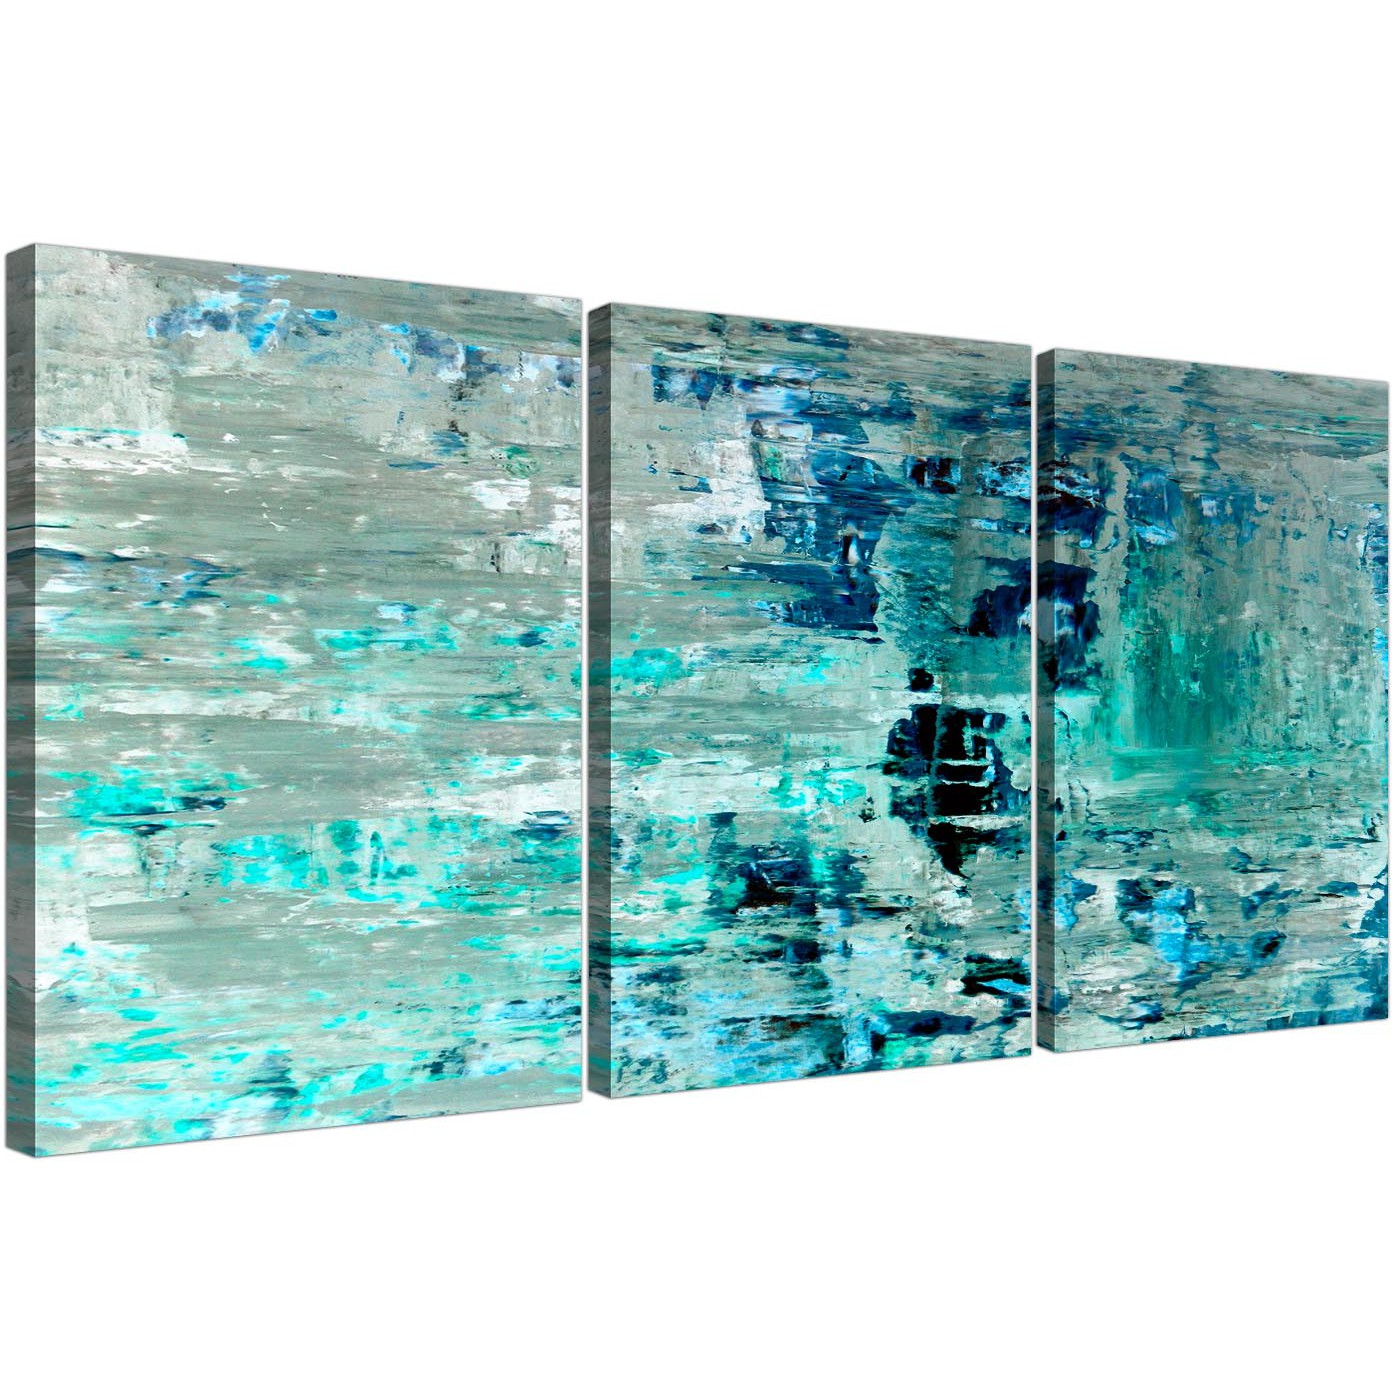 Oversized turquoise teal abstract painting wall art print canvas split 3 panel 3333 for your bedroom display gallery item 1